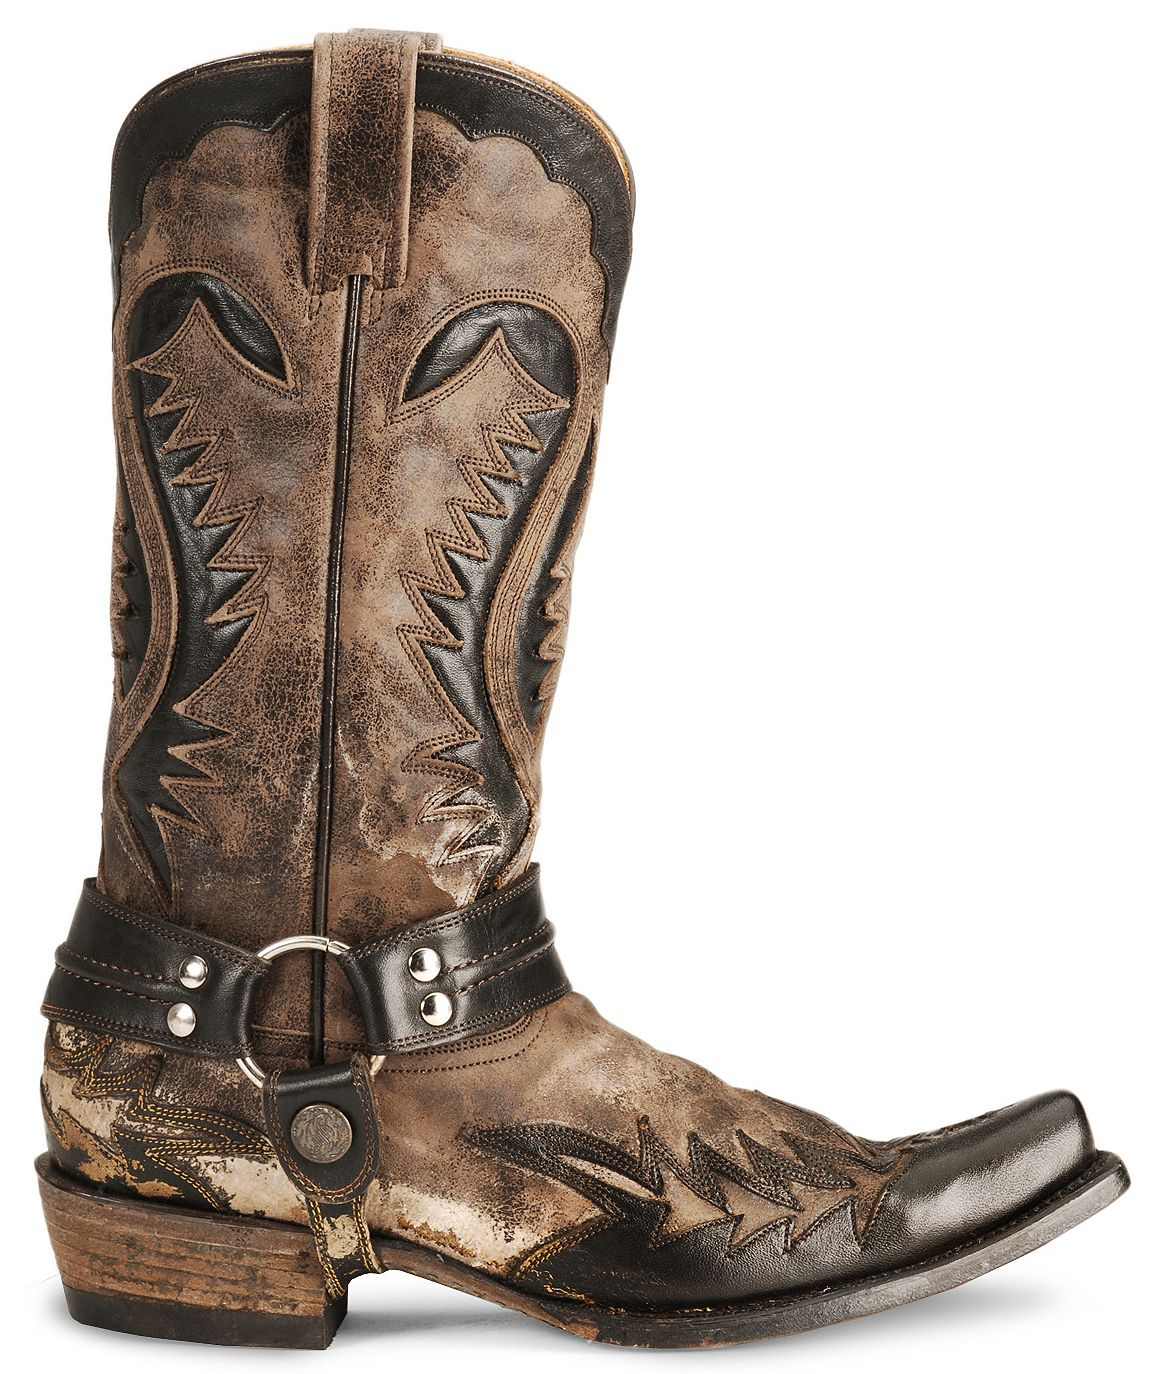 Stetson Brown Harness Cowboy Boots - Snip Toe | Sheplers